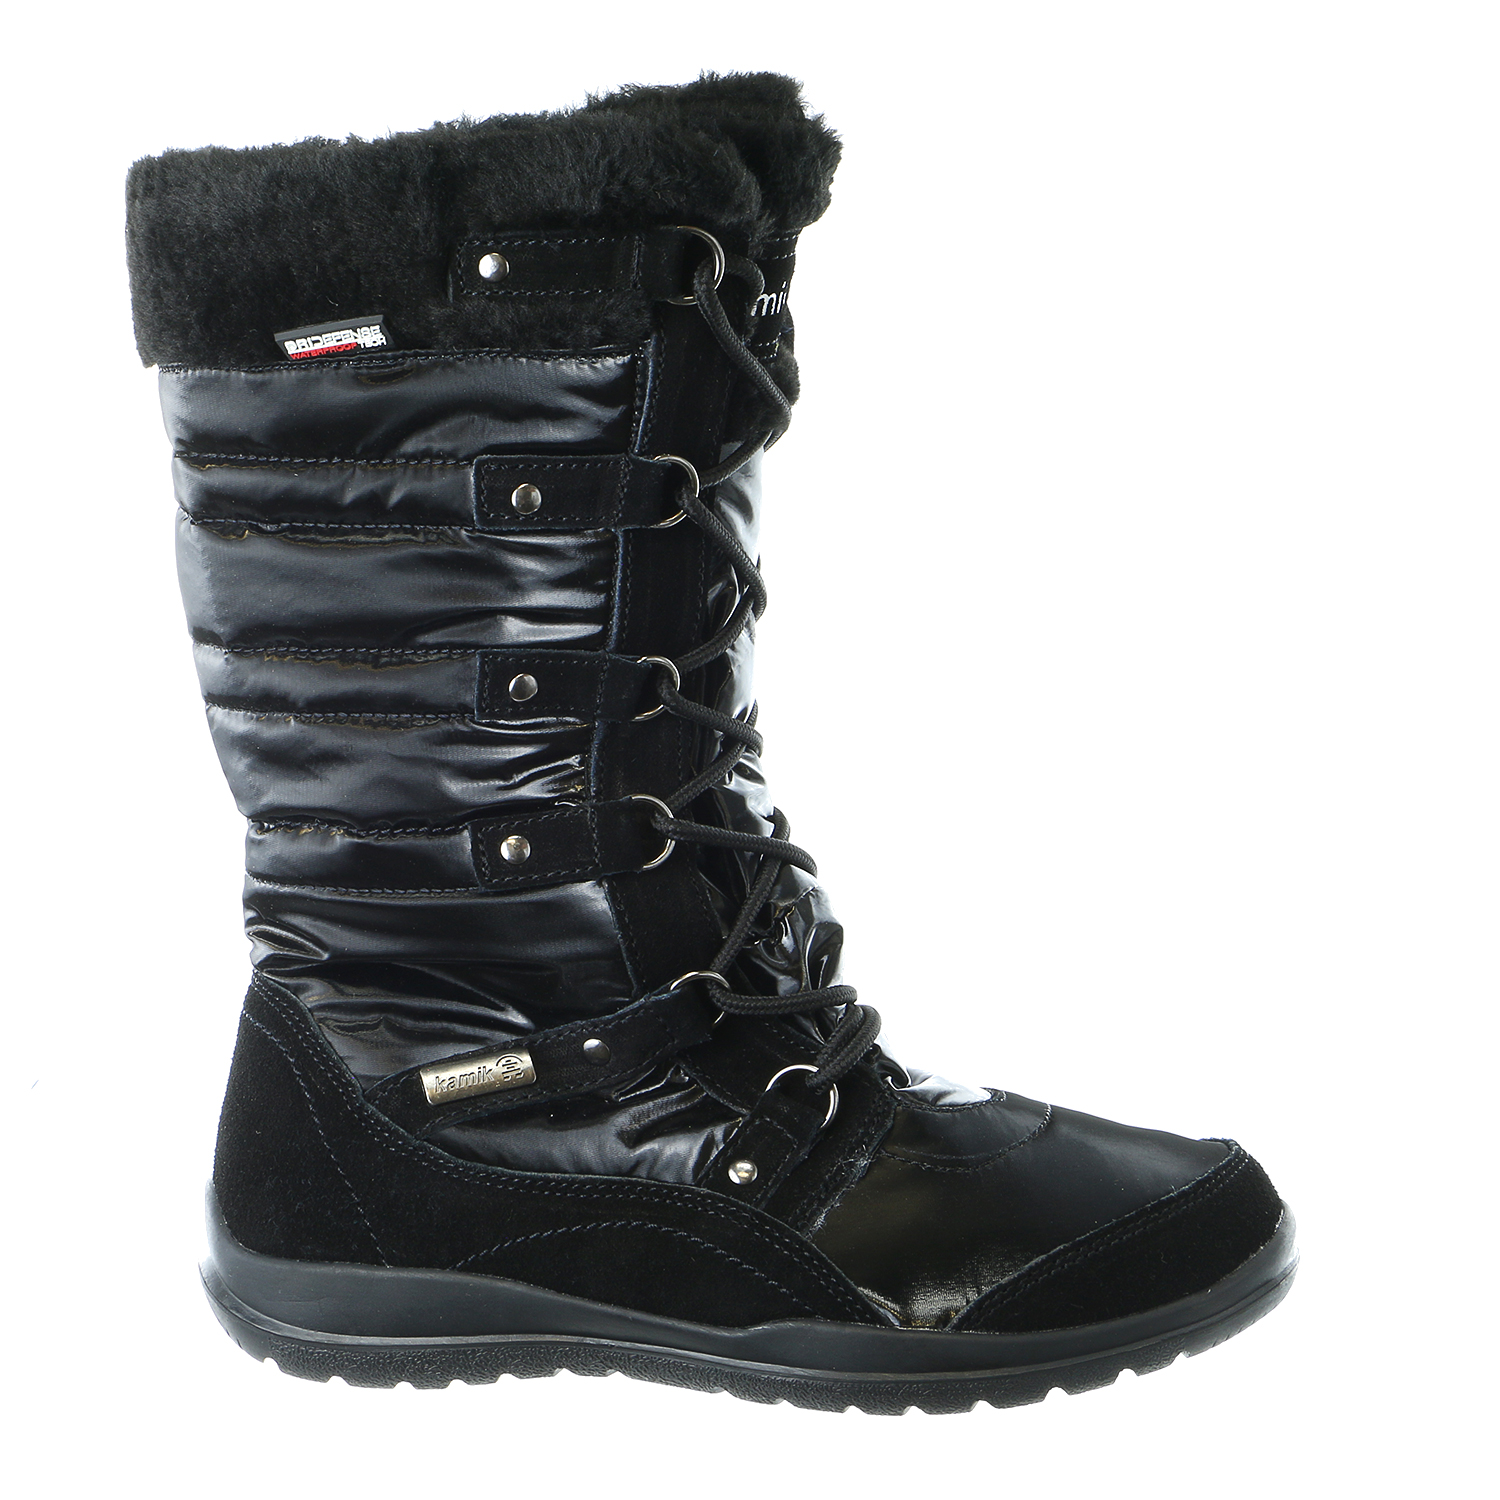 Kamik Valletta Insulated Winter Snow Boot Shoe - Womens